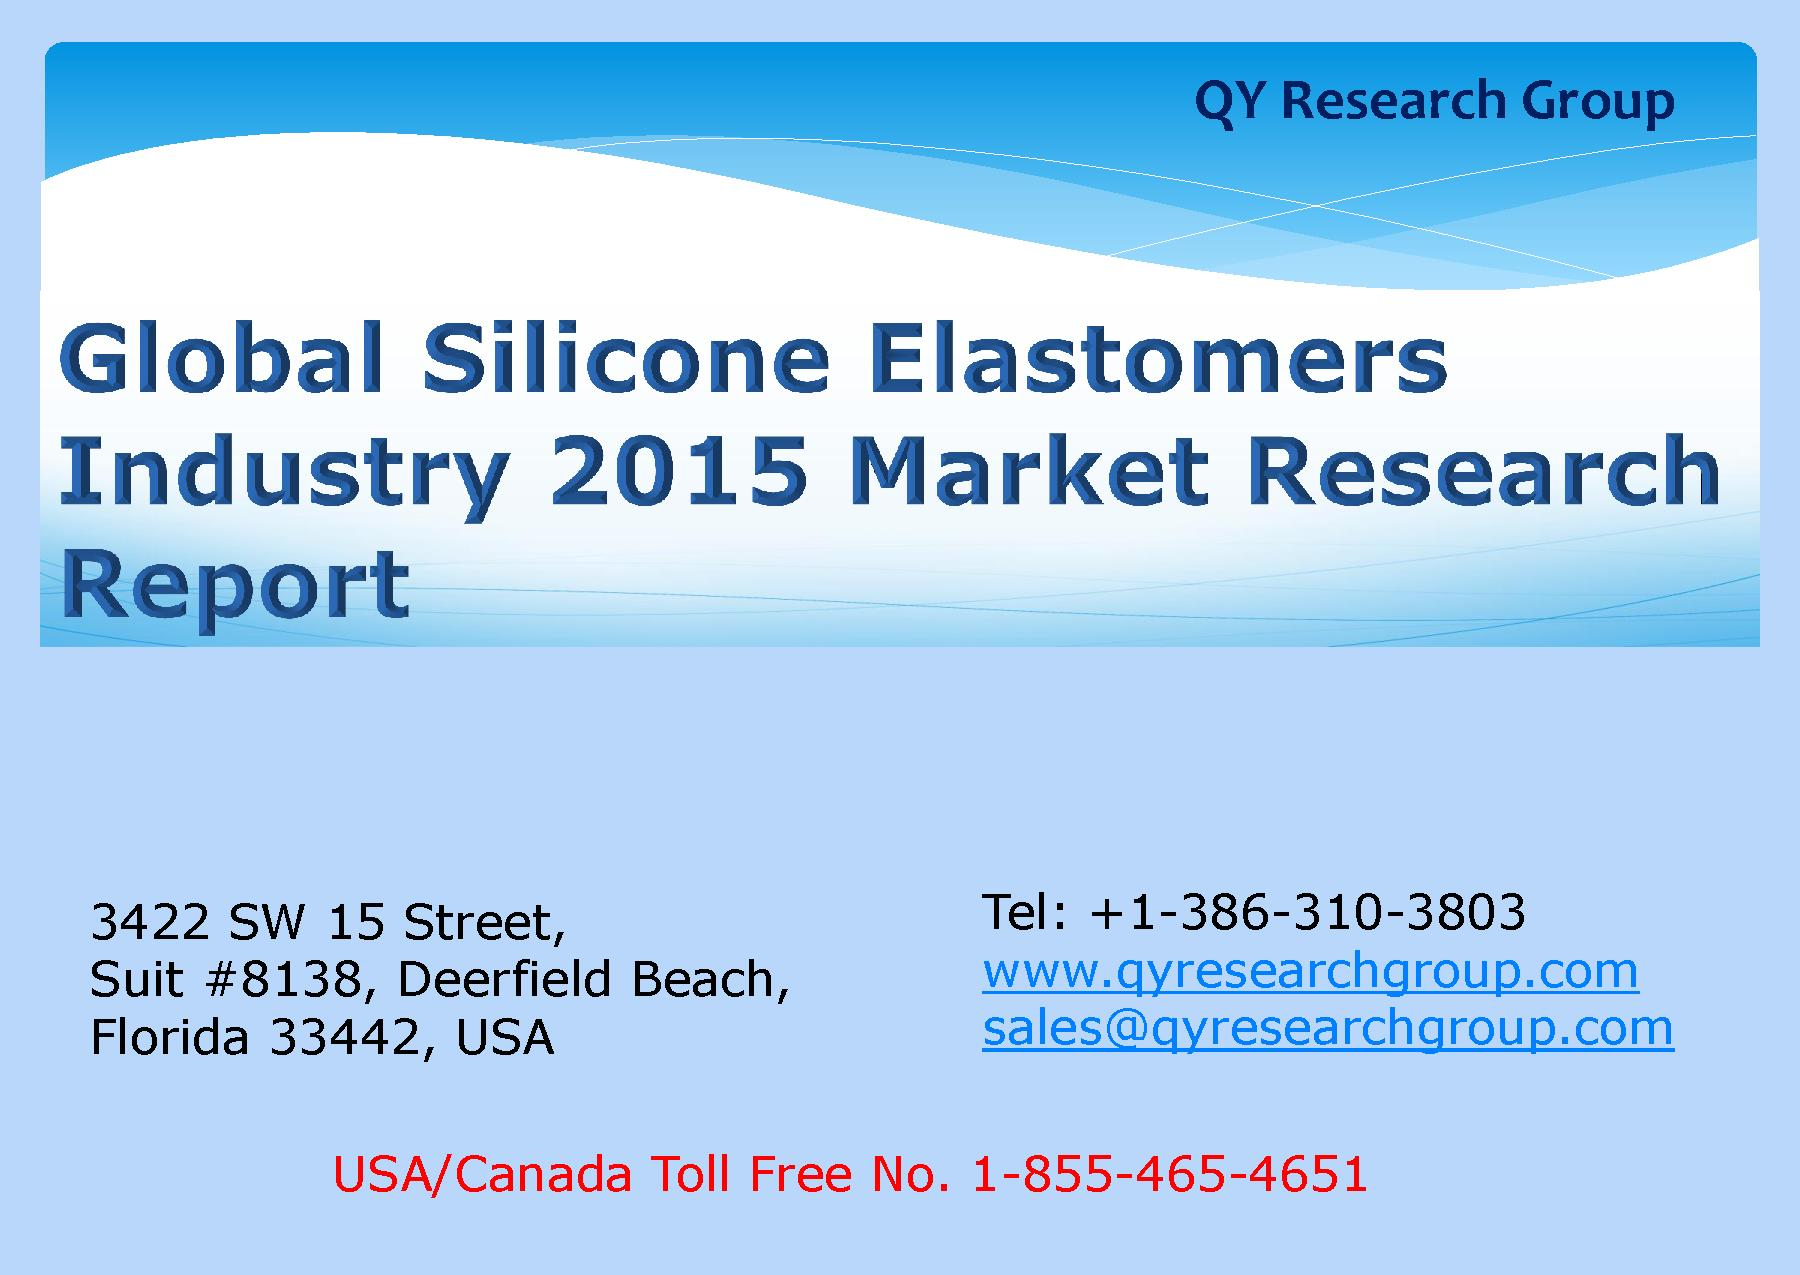 Global Silicone Elastomers Industry 2015 Market Research